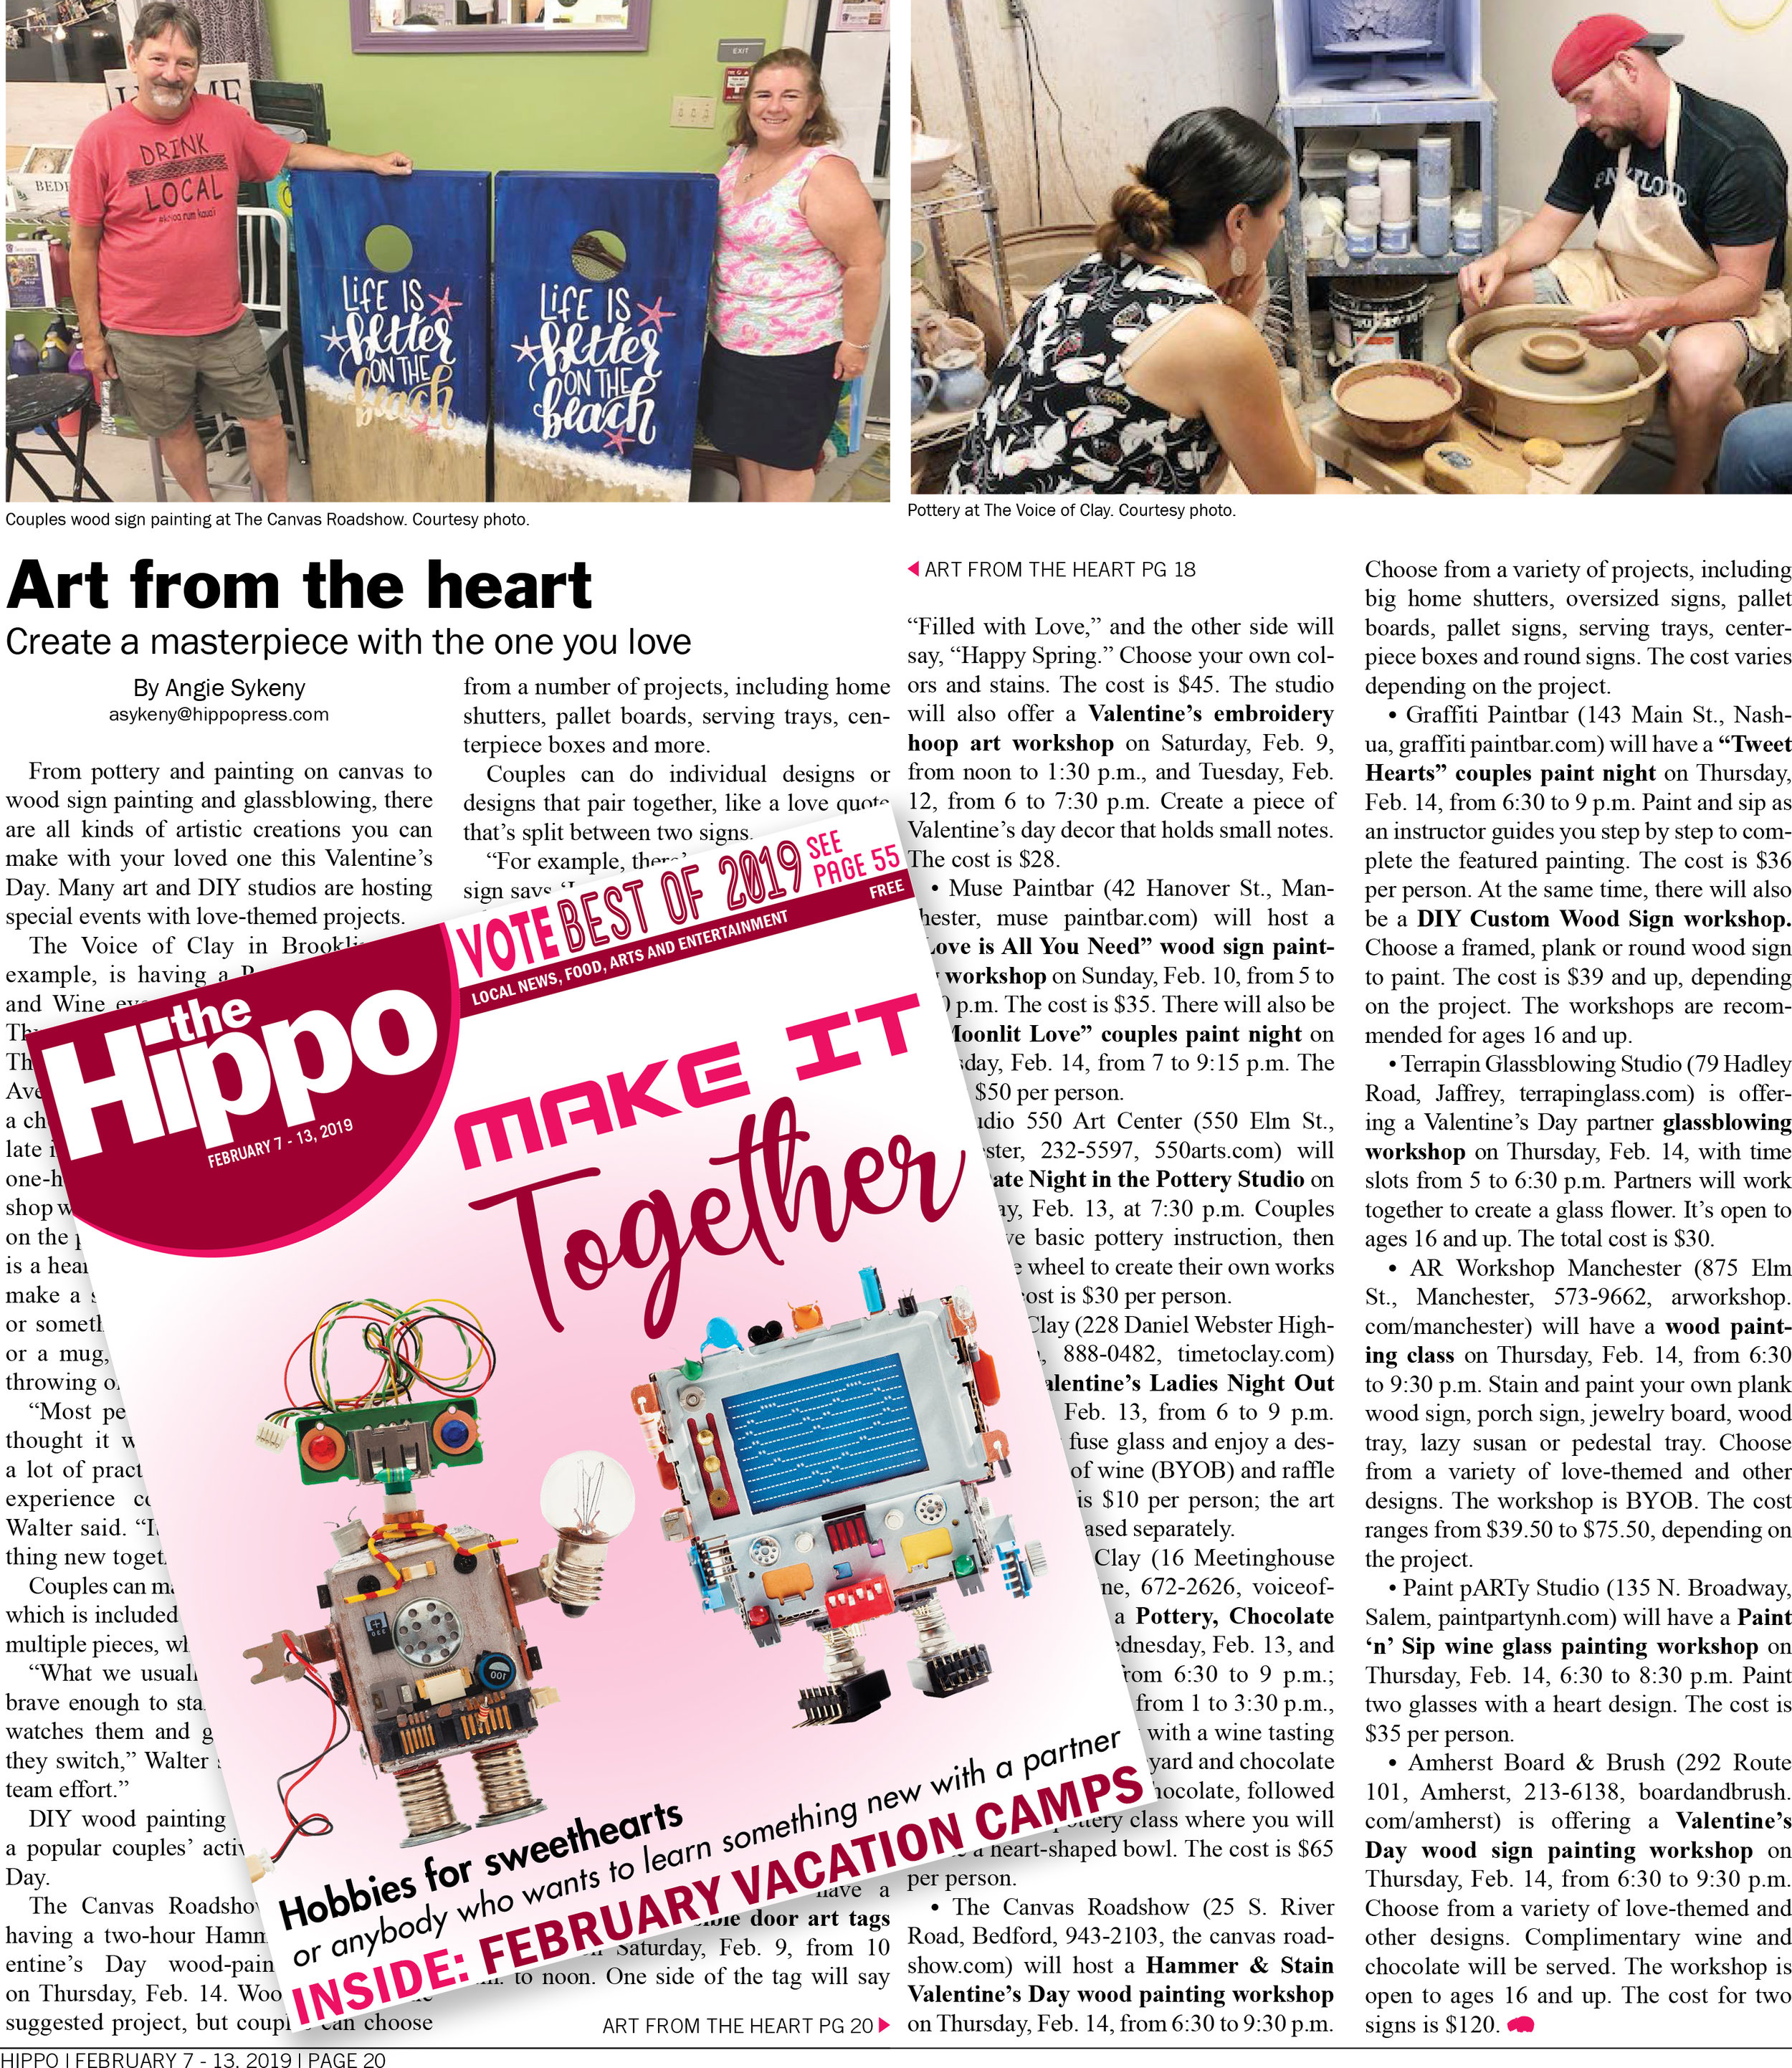 Art from the Heart |   THE HIPPO    | February 2019    Read the entire article .